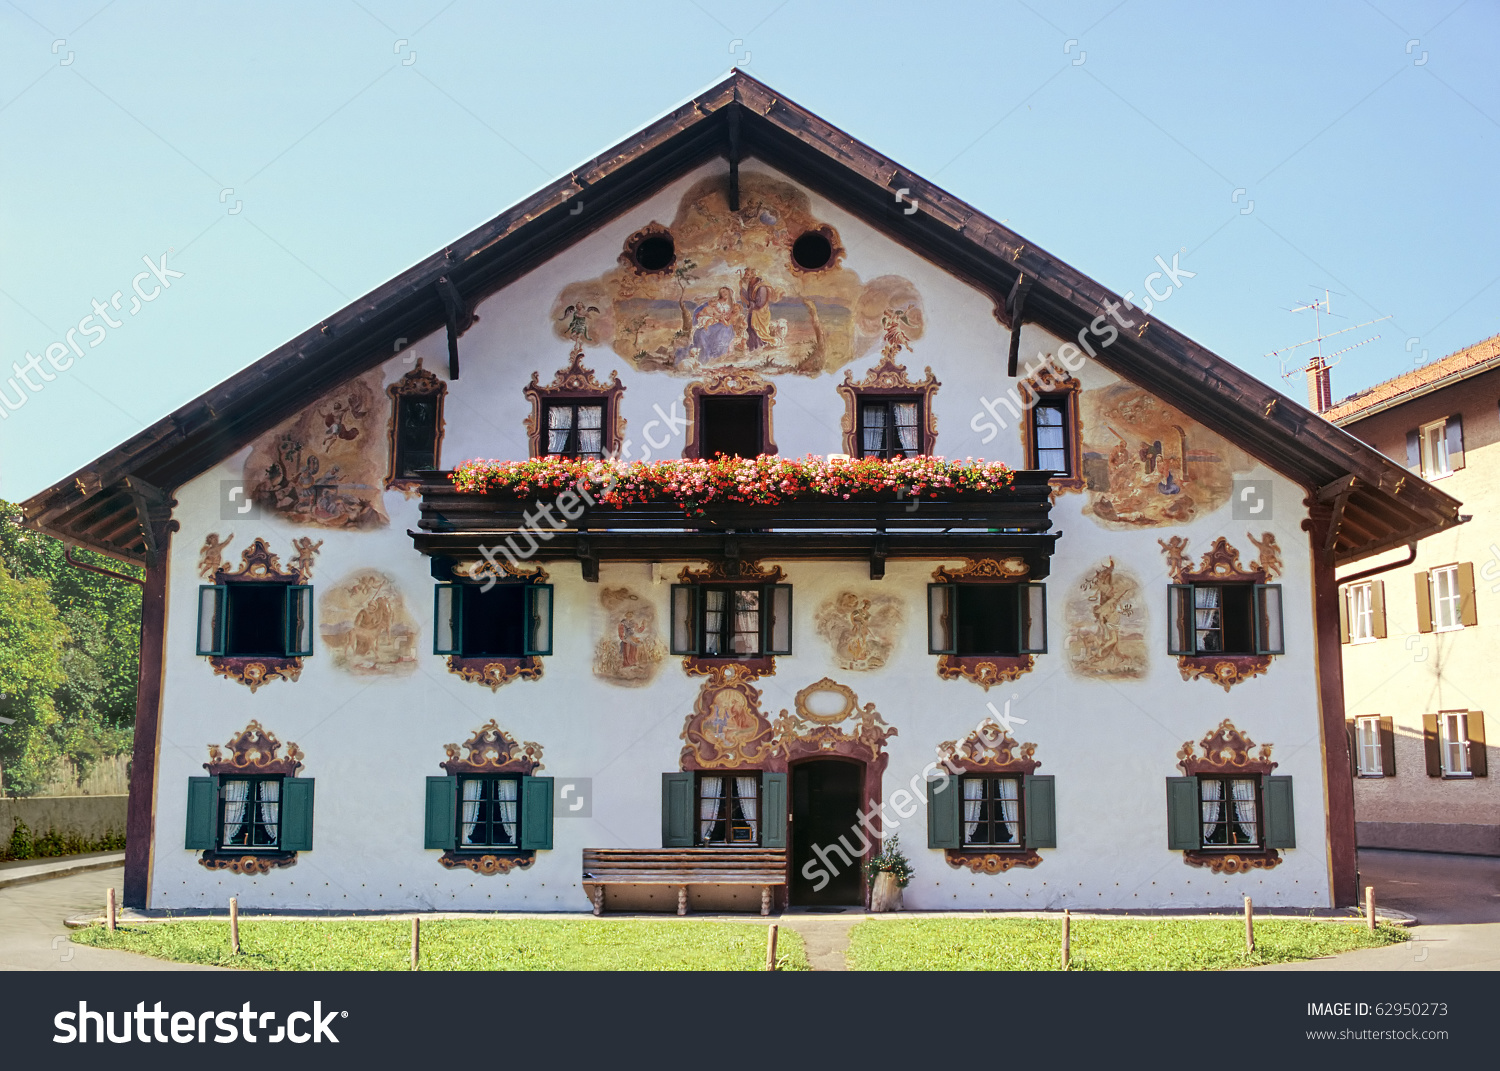 Decorated Bavarian House Stock Photo 62950273.